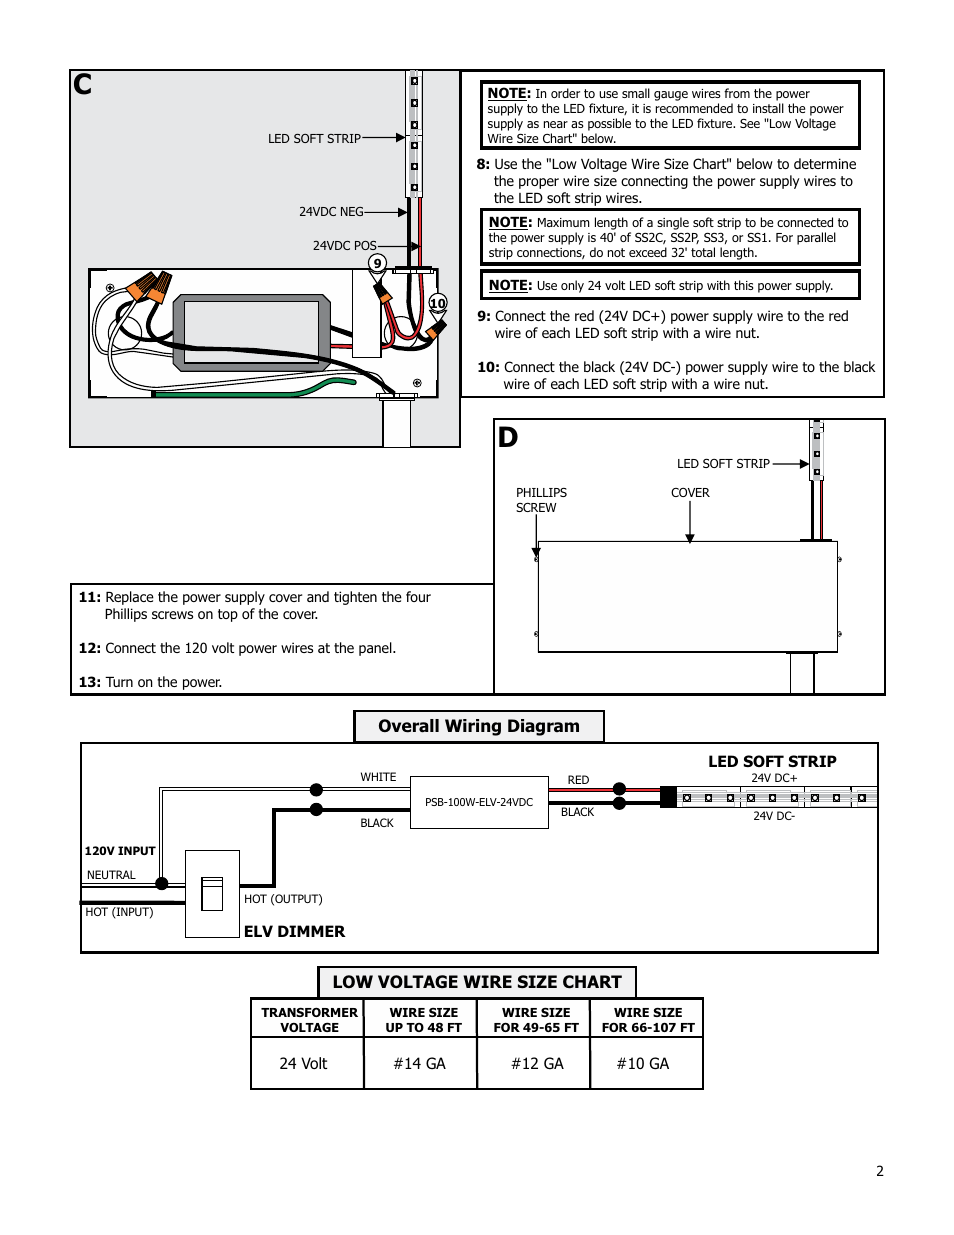 overall wiring diagram low voltage wire size chart edge lighting overall wiring diagram low voltage wire size chart edge lighting psb 100w